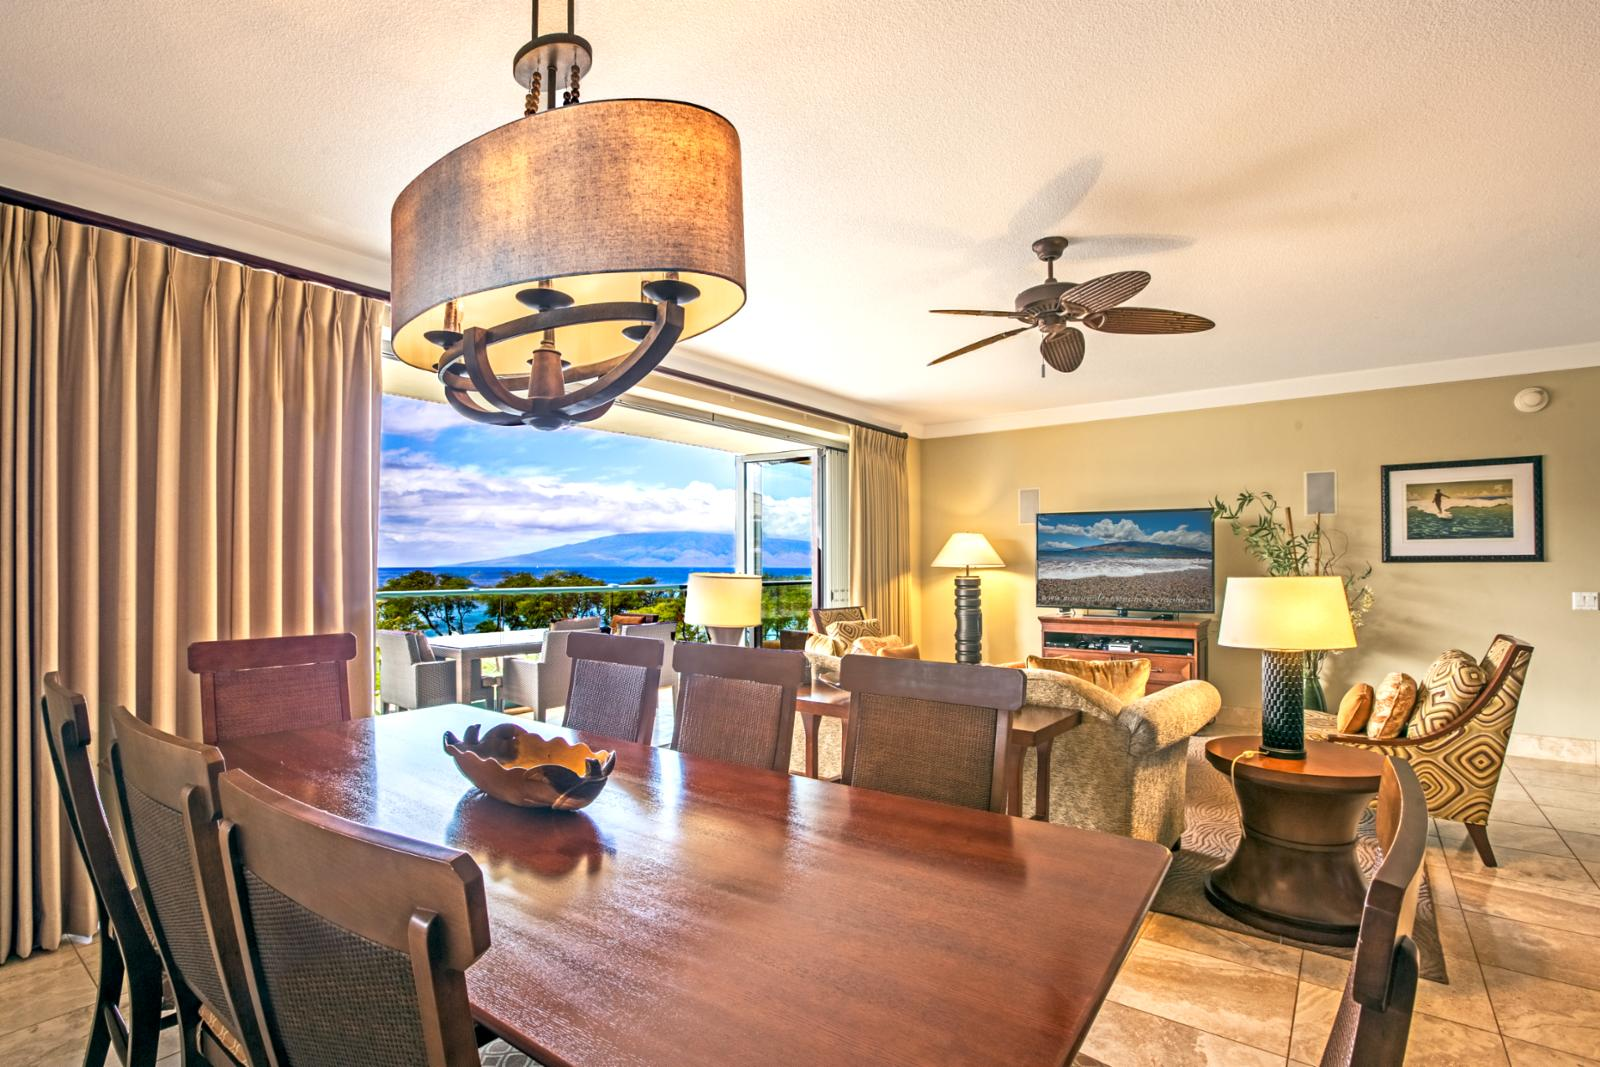 Reverse angle showing ocean views from formal dining area